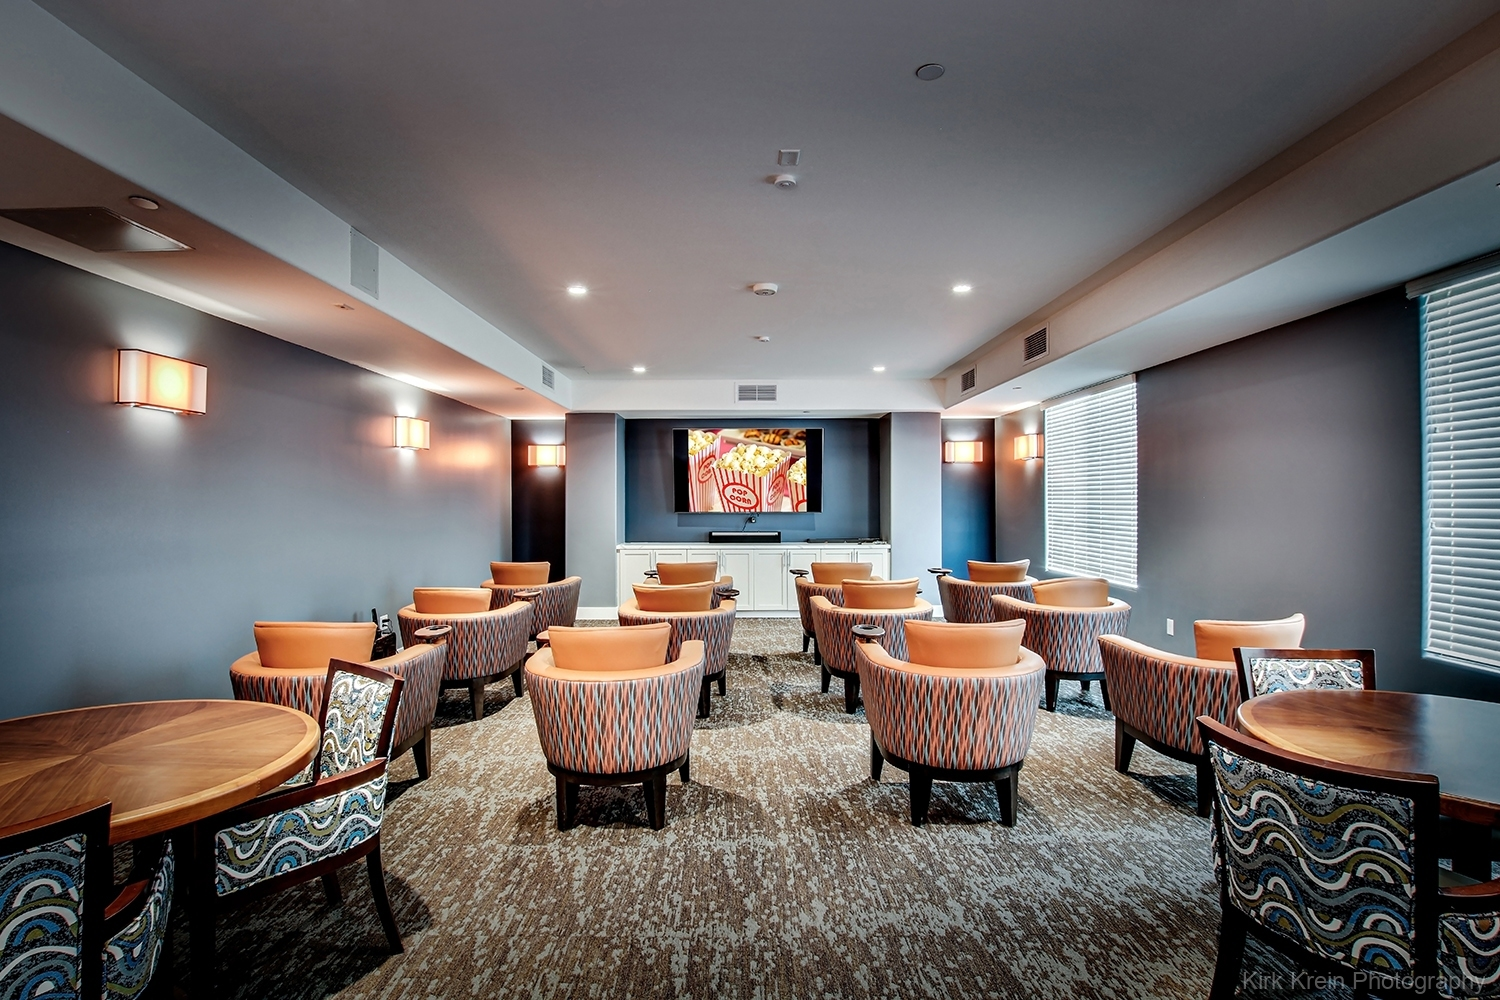 Theater Room, Assisted Living Facility - Phoenix Architectural and Commercial Real Estate Photography by Kirk Krein, Phoenix, AZ - East Valley and Beyond including Mesa, Chandler, Gilbert, Tempe and Scottsdale, AZ